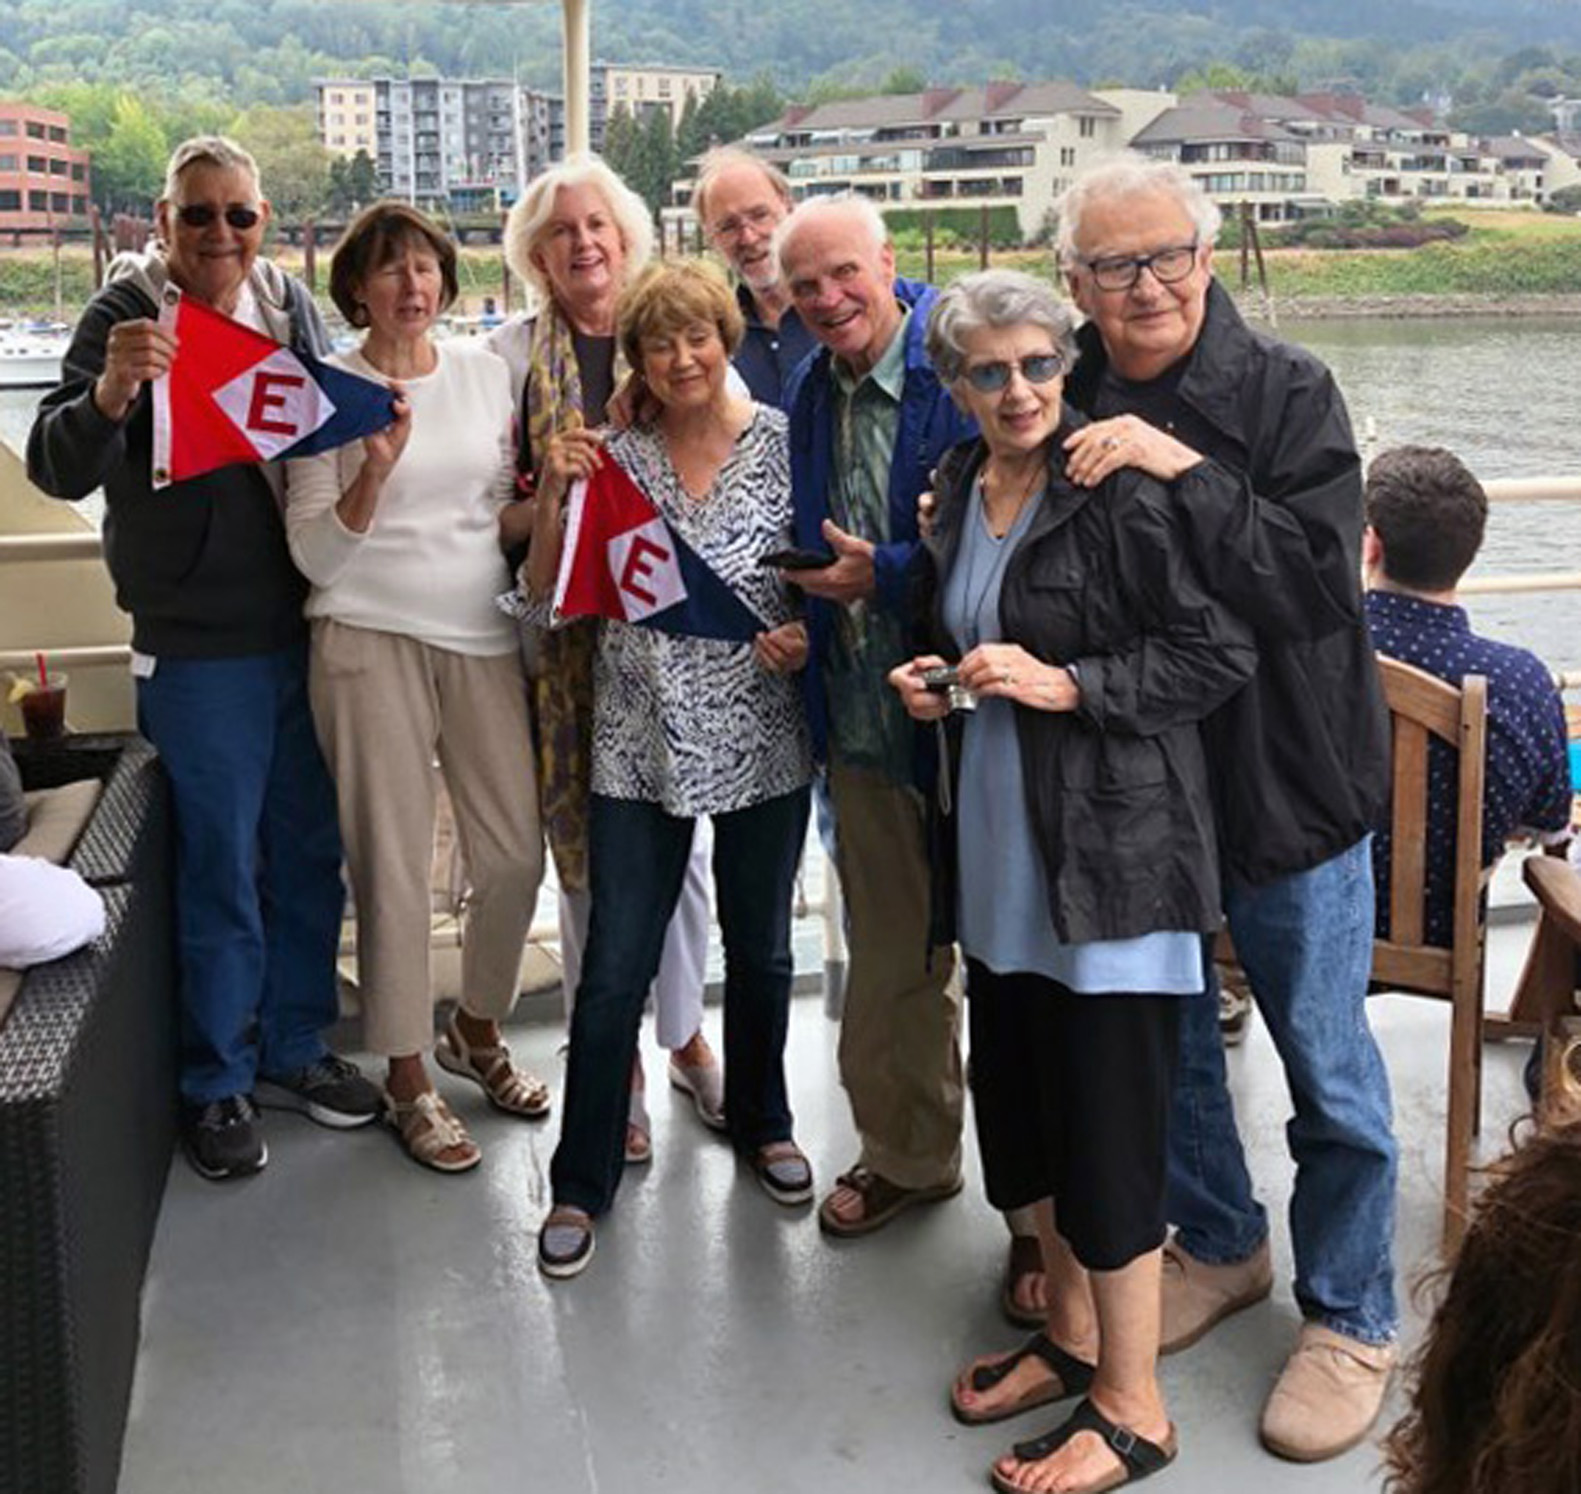 Celebrating Dave and Marji Clune's 50th wedding anniversary with the Swangards, the Ellsworths, and friends aboard the Portland Spirit on the Willamette River